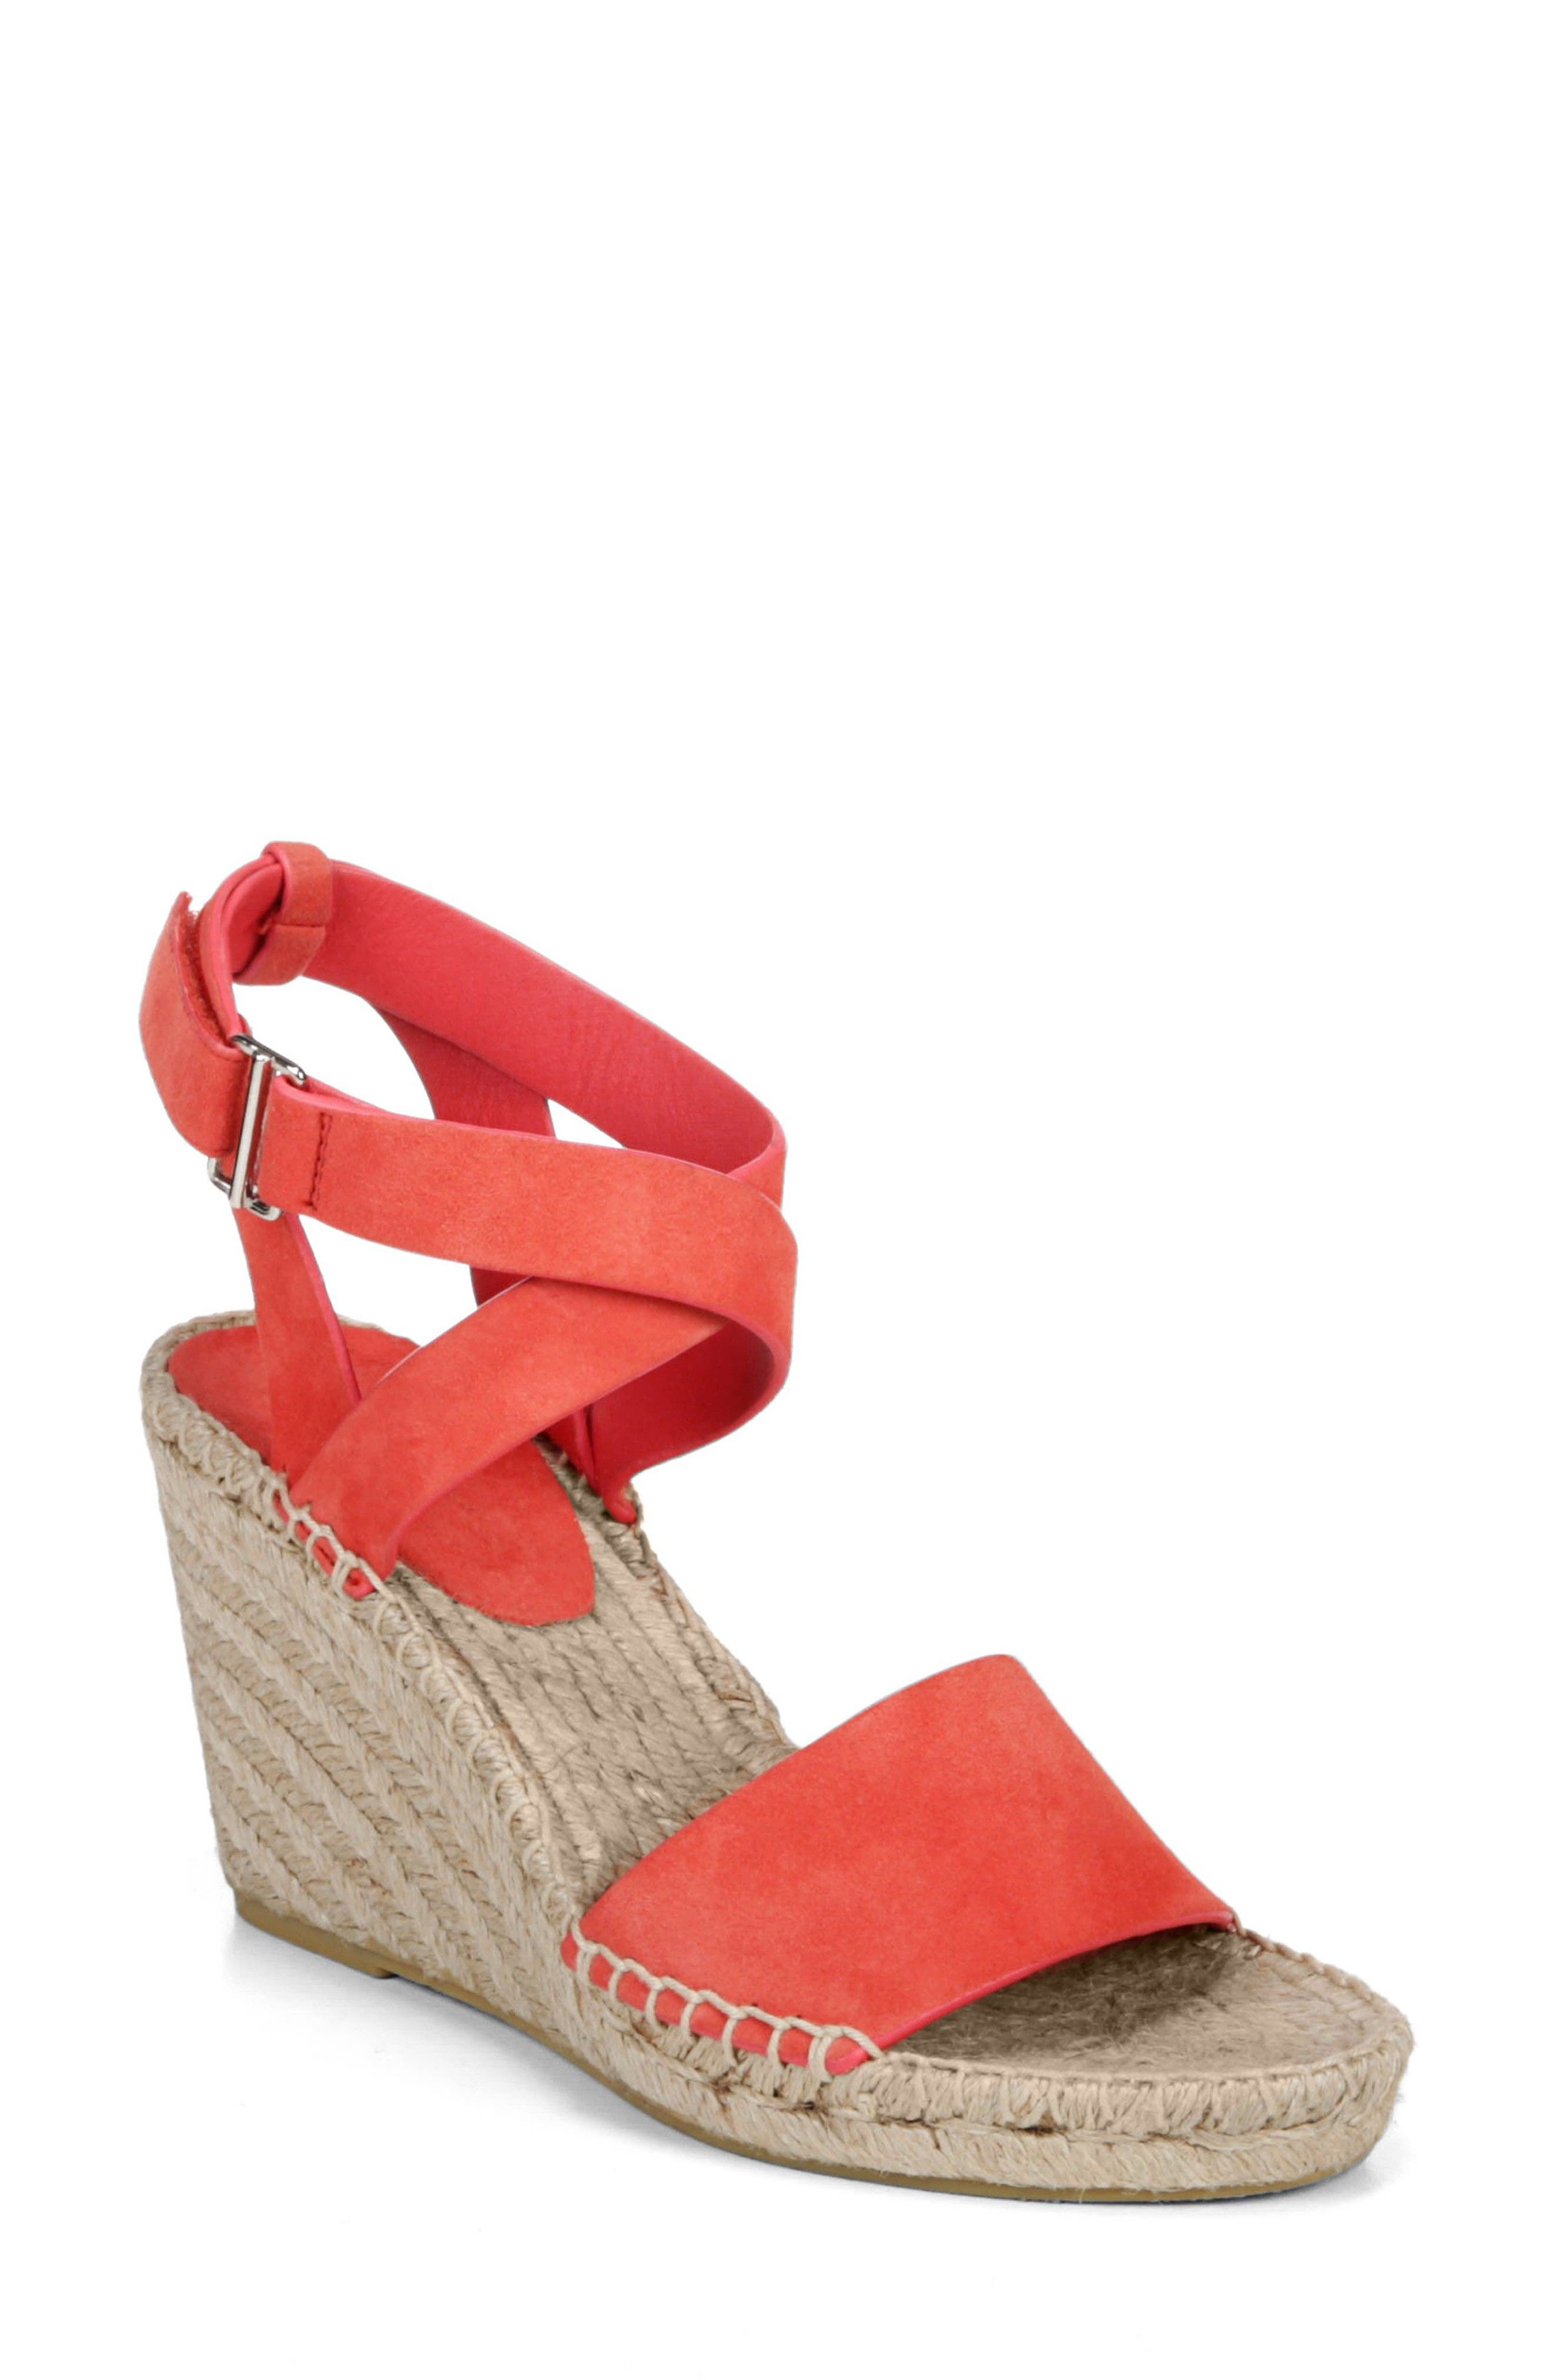 Via Spiga Nevada Espadrille Wedge Sandal (Women)